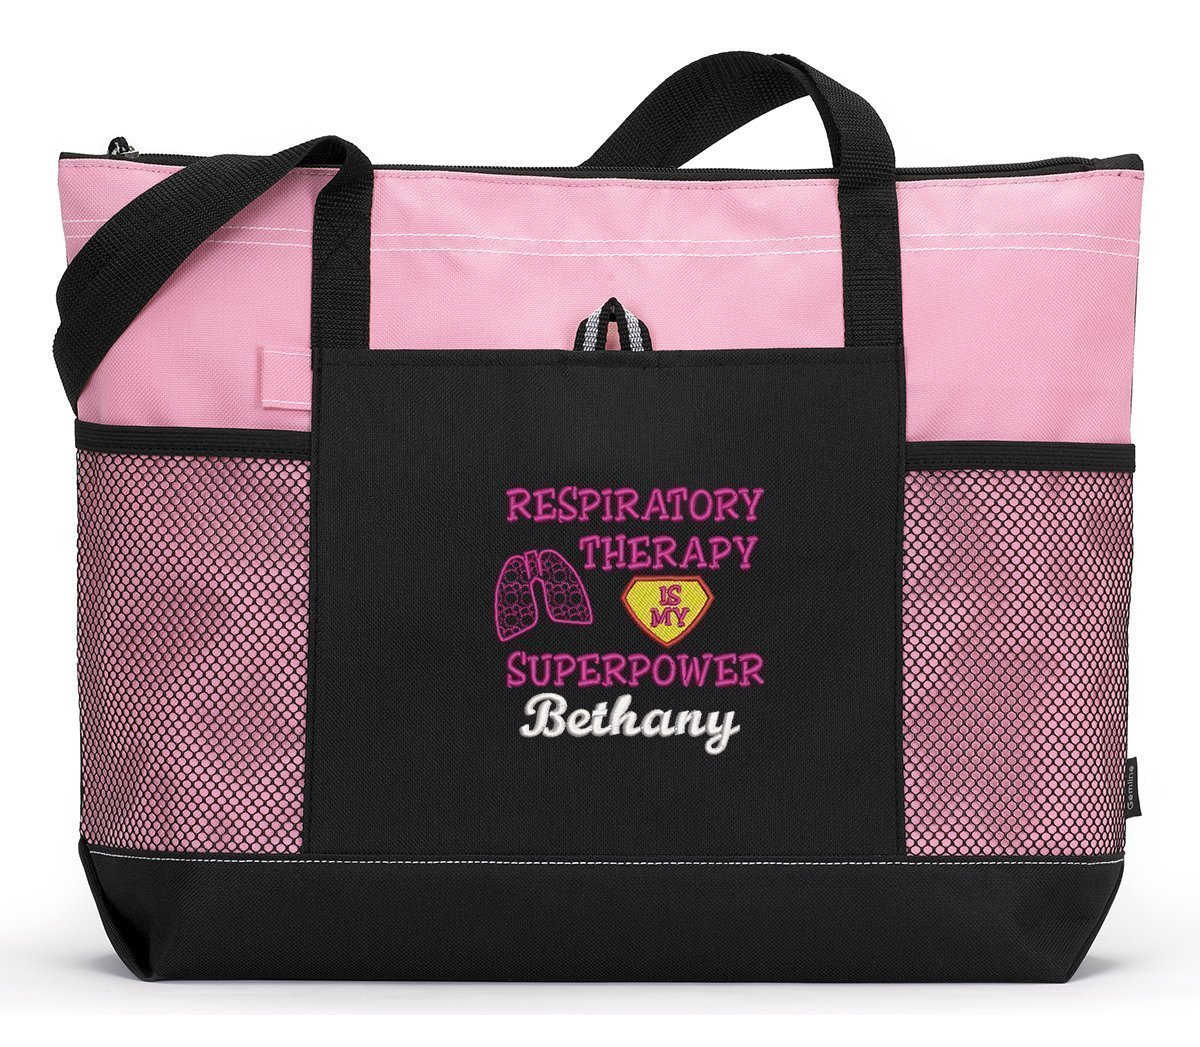 Respiratory Therapy is My Superpower Personalized Embroidered Tote